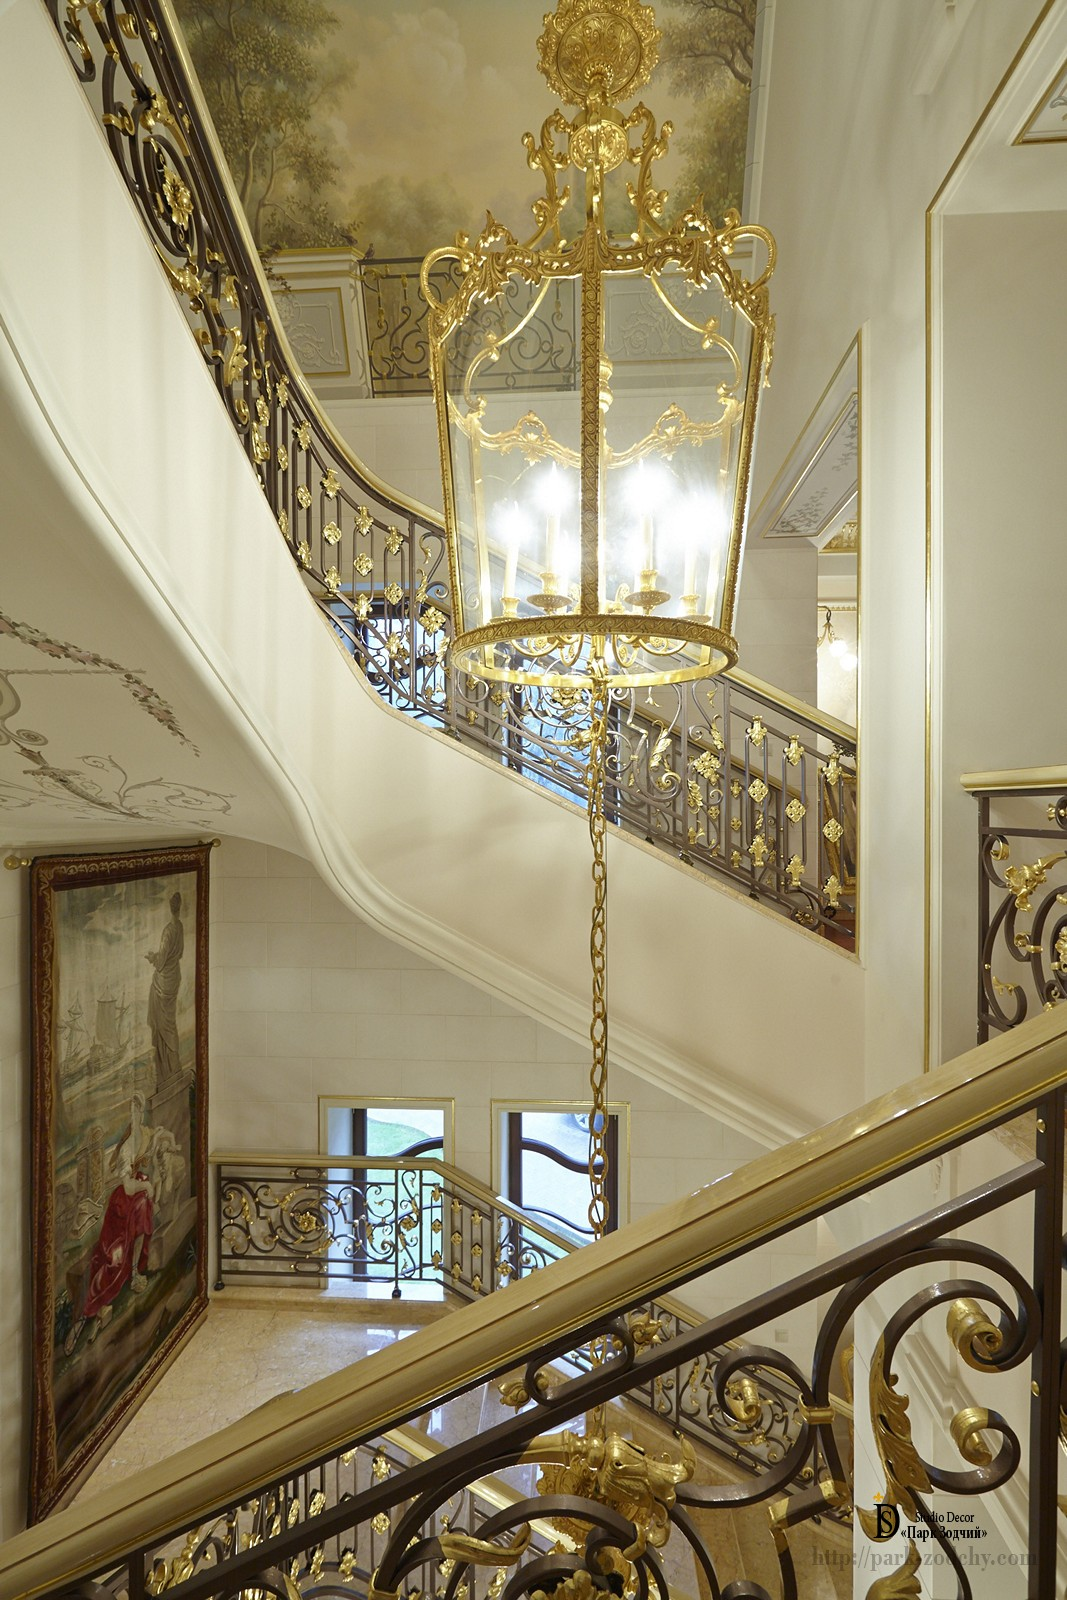 Staircase in a country mansion with paintings and gilding